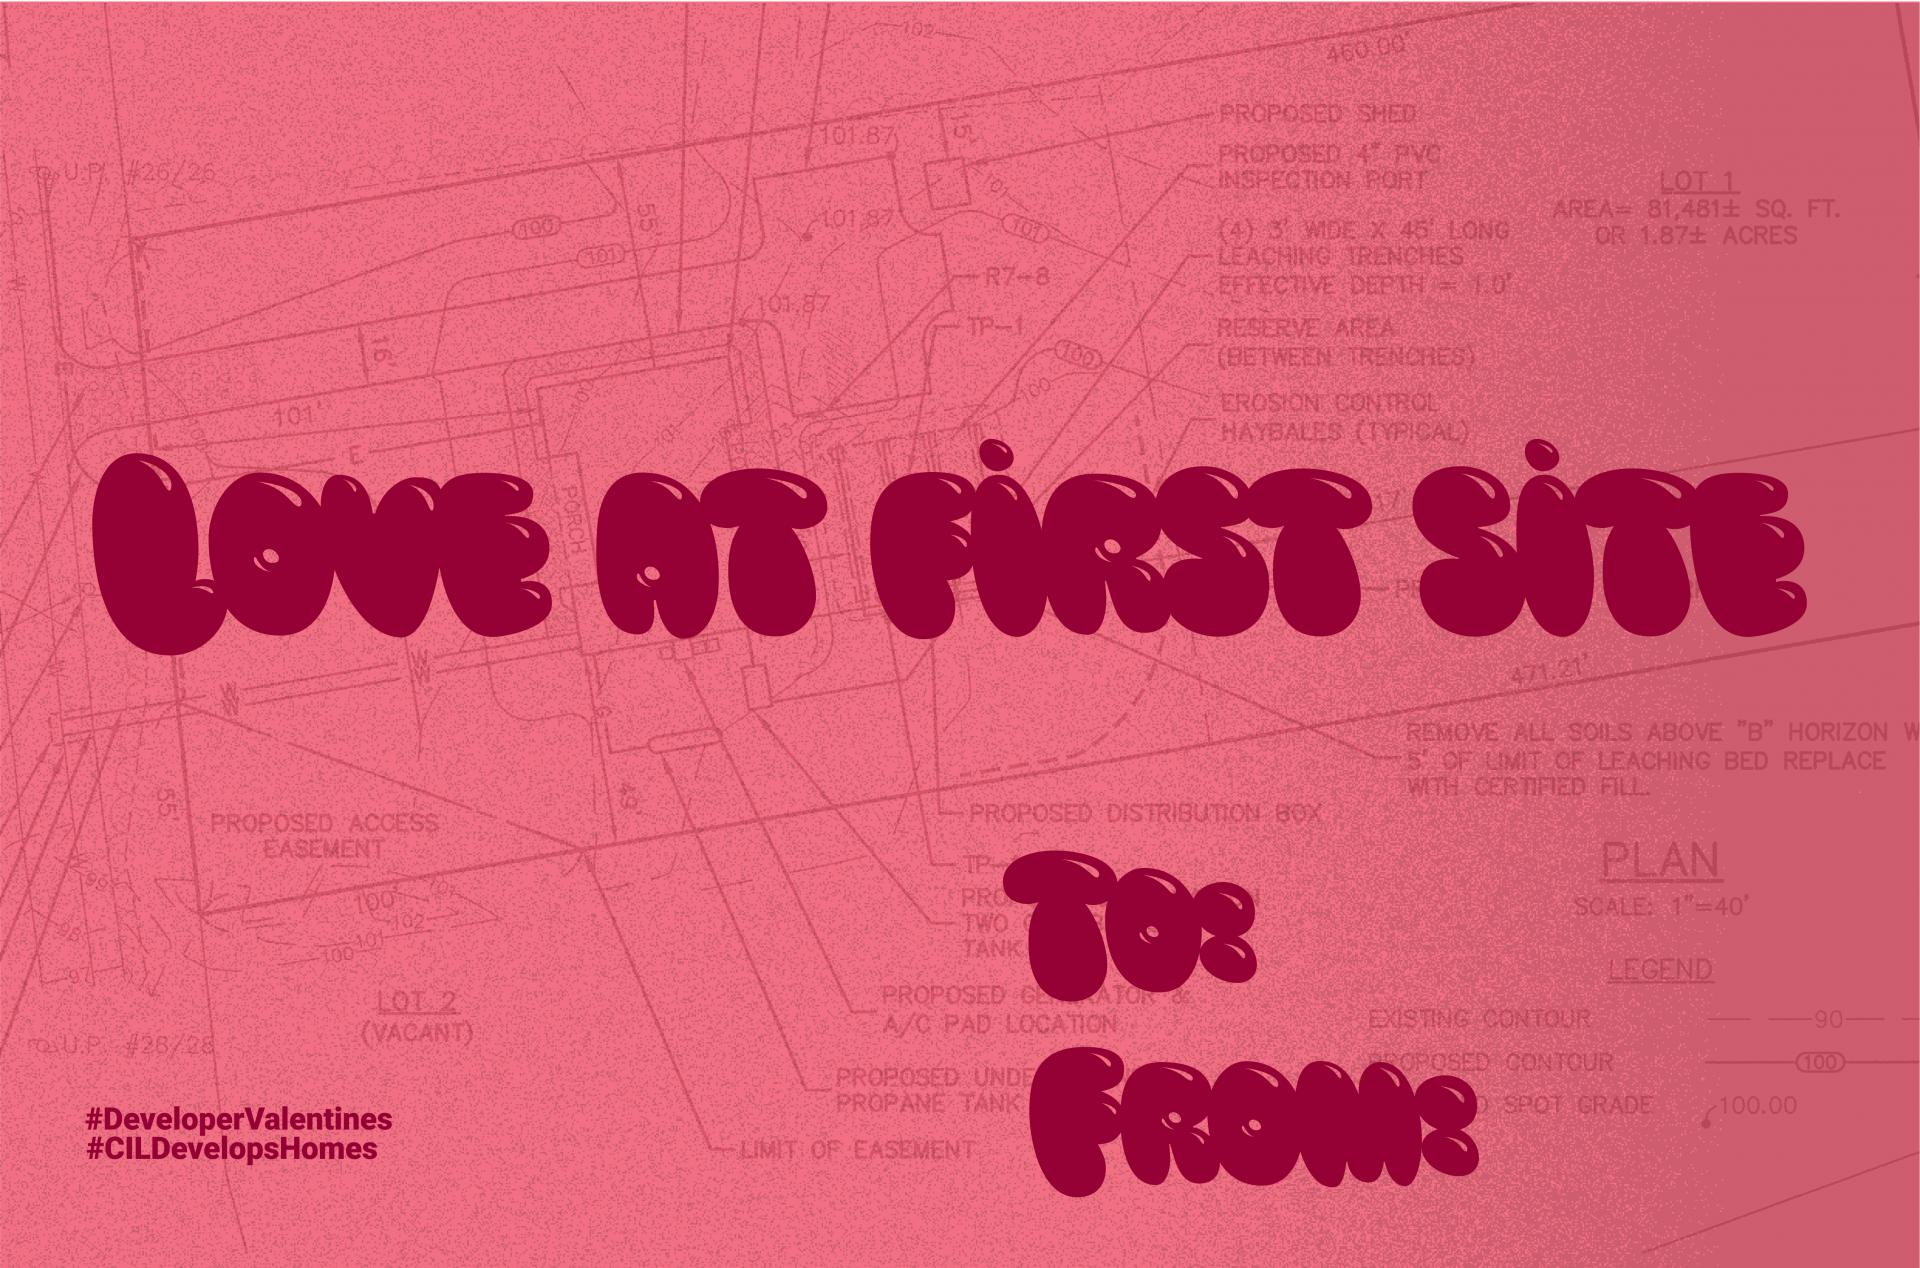 Love At First Site. #DeveloperValentines